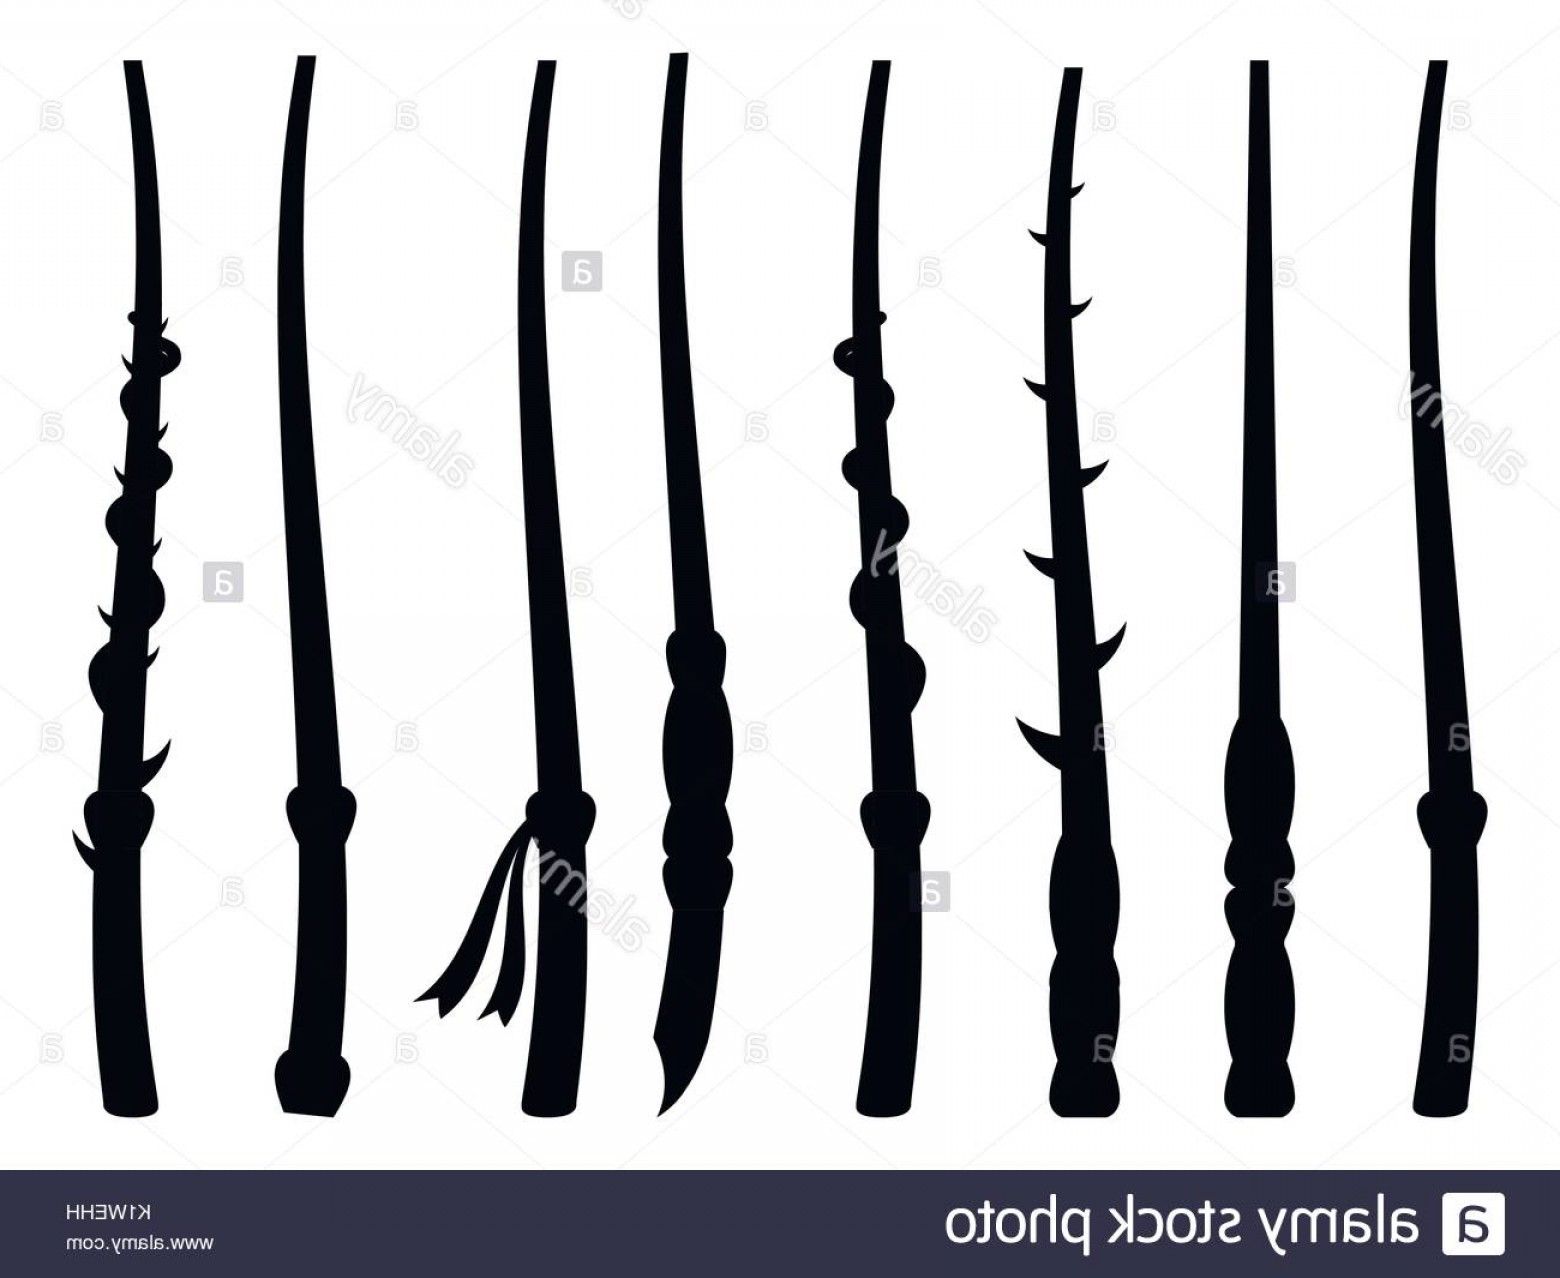 Wizard Silhouette Vector: Magic Wands Silhouette On A White Background Wizard Tool Vector Illustration Image